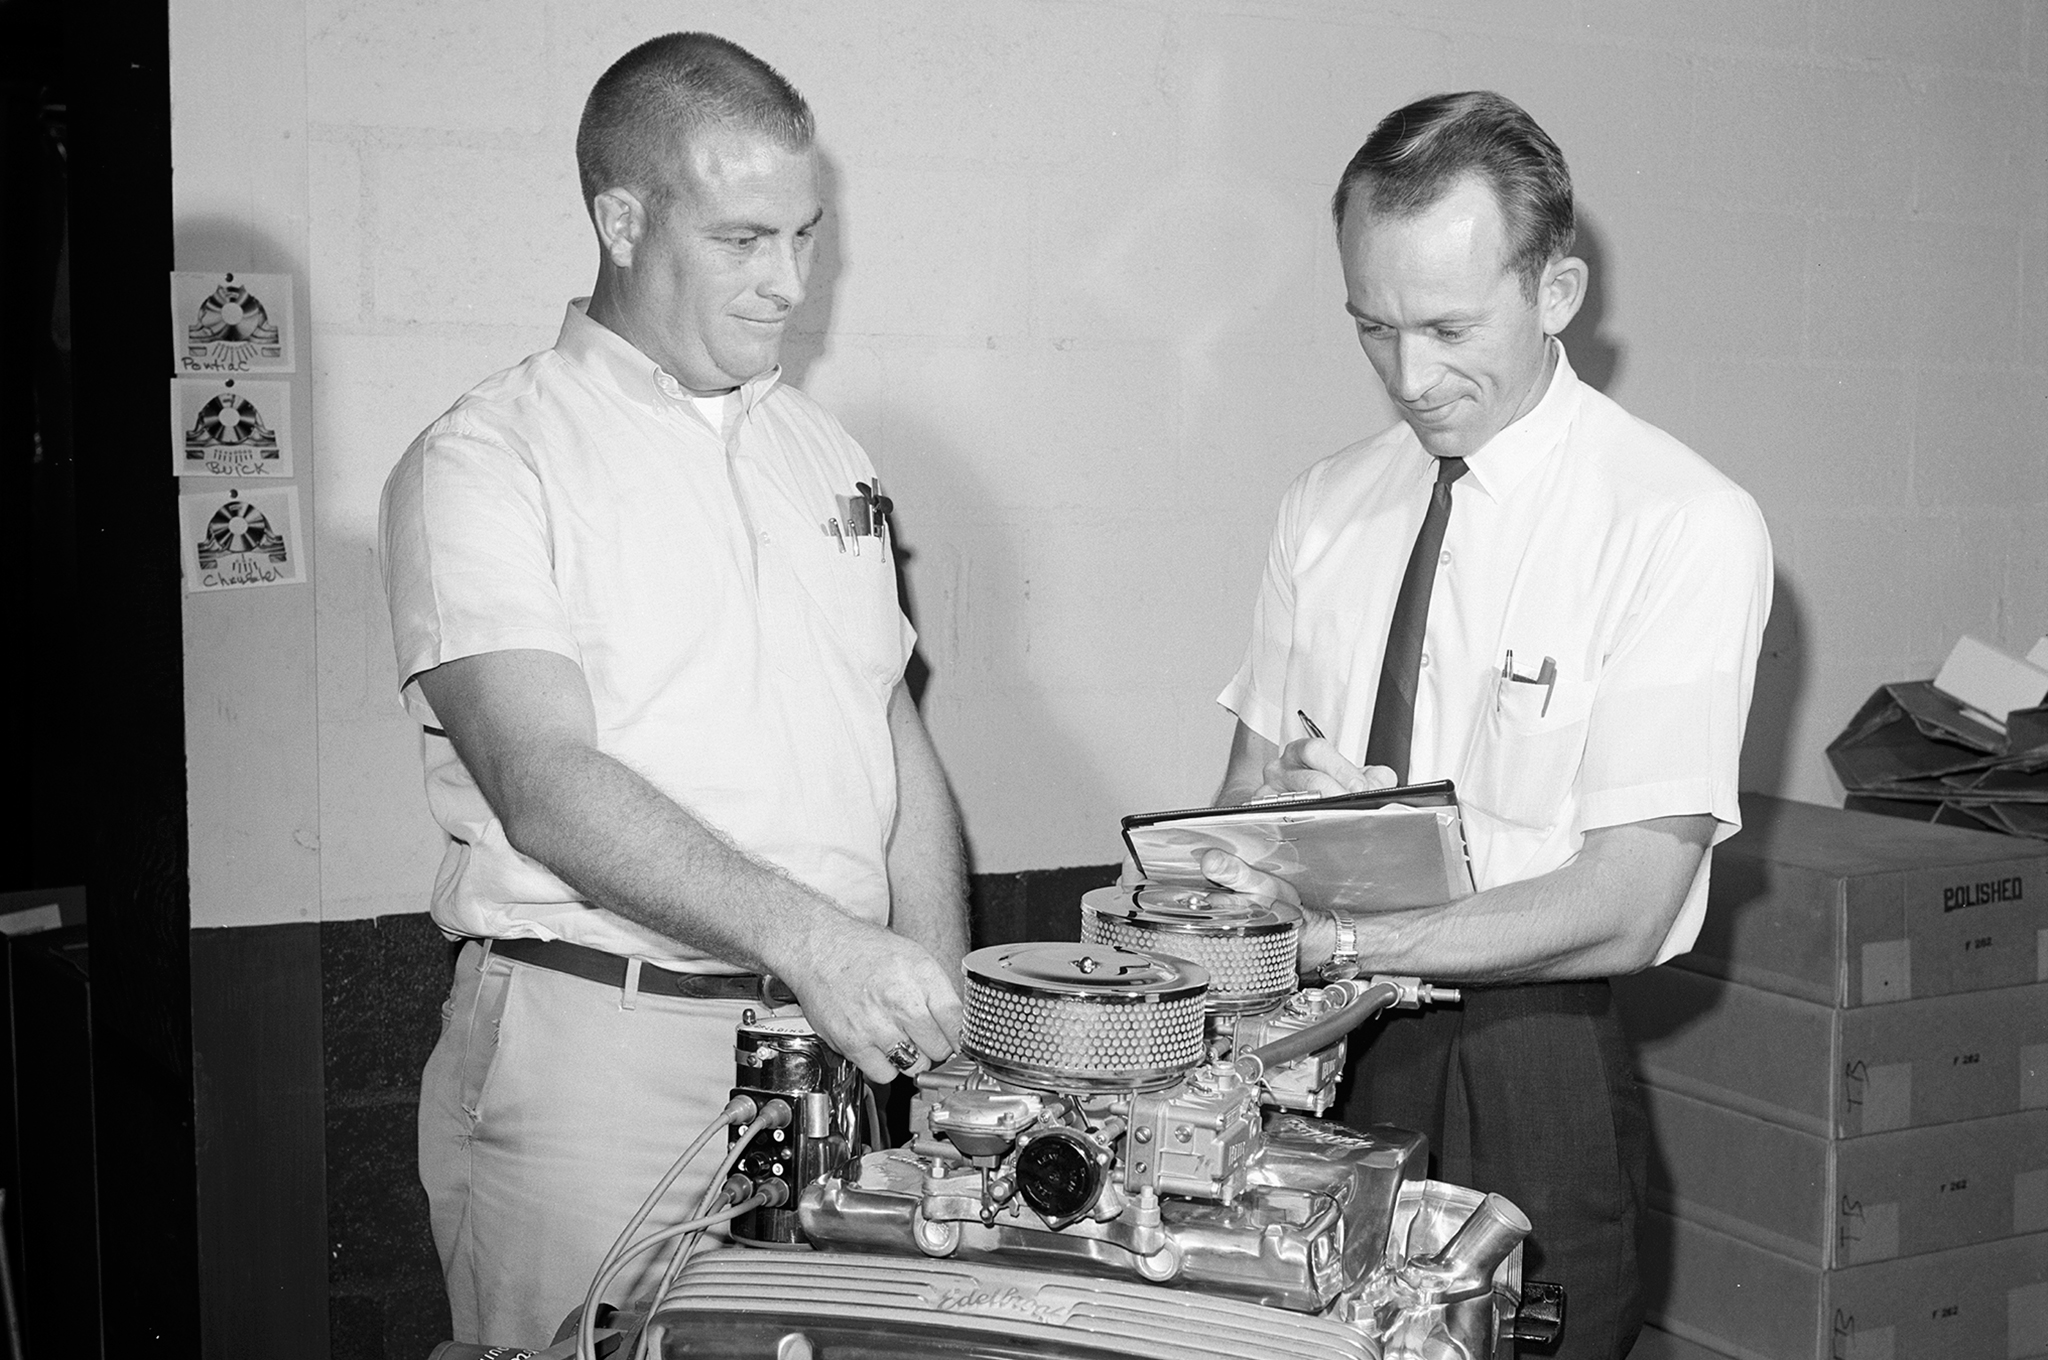 McFarland's 50-year relationship with Vic Edelbrock Jr. dates back to this initial visit by HRM's cub reporter in November 1965.